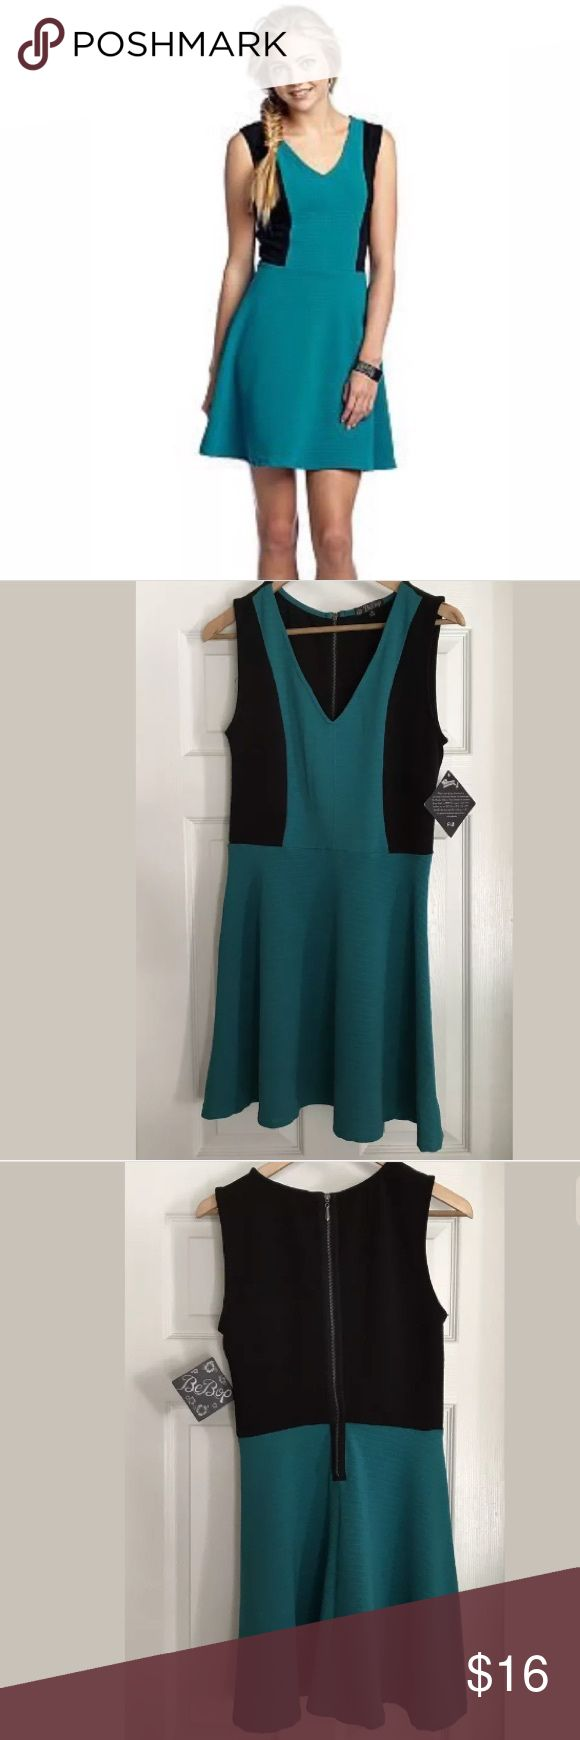 """BeBop Women's Fit And Flare Dress Size Medium BeBop Women's Fit And Flare Dress Size Medium Teal And Black. Preowned!! Excellent Condition!! Length 35"""" BeBop Dresses Mini"""